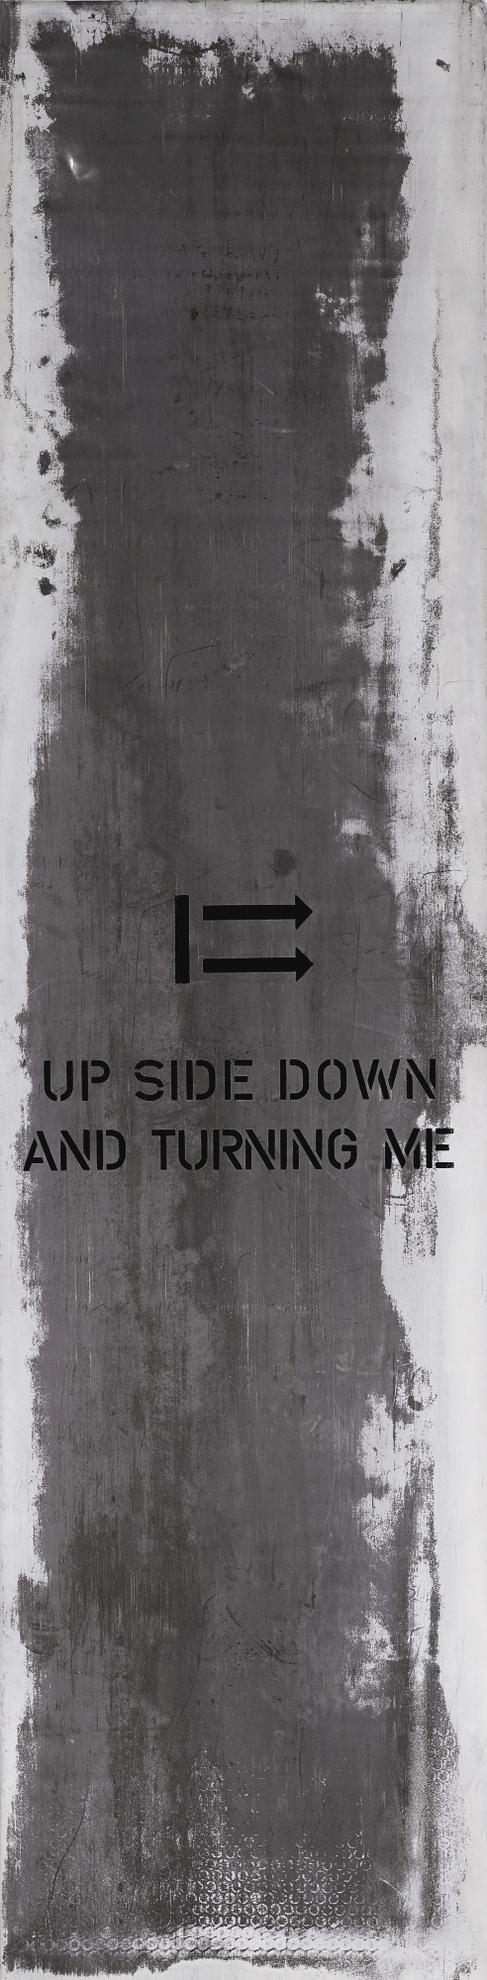 Martin Kippenberger-Upside Down And Turning Me-1989